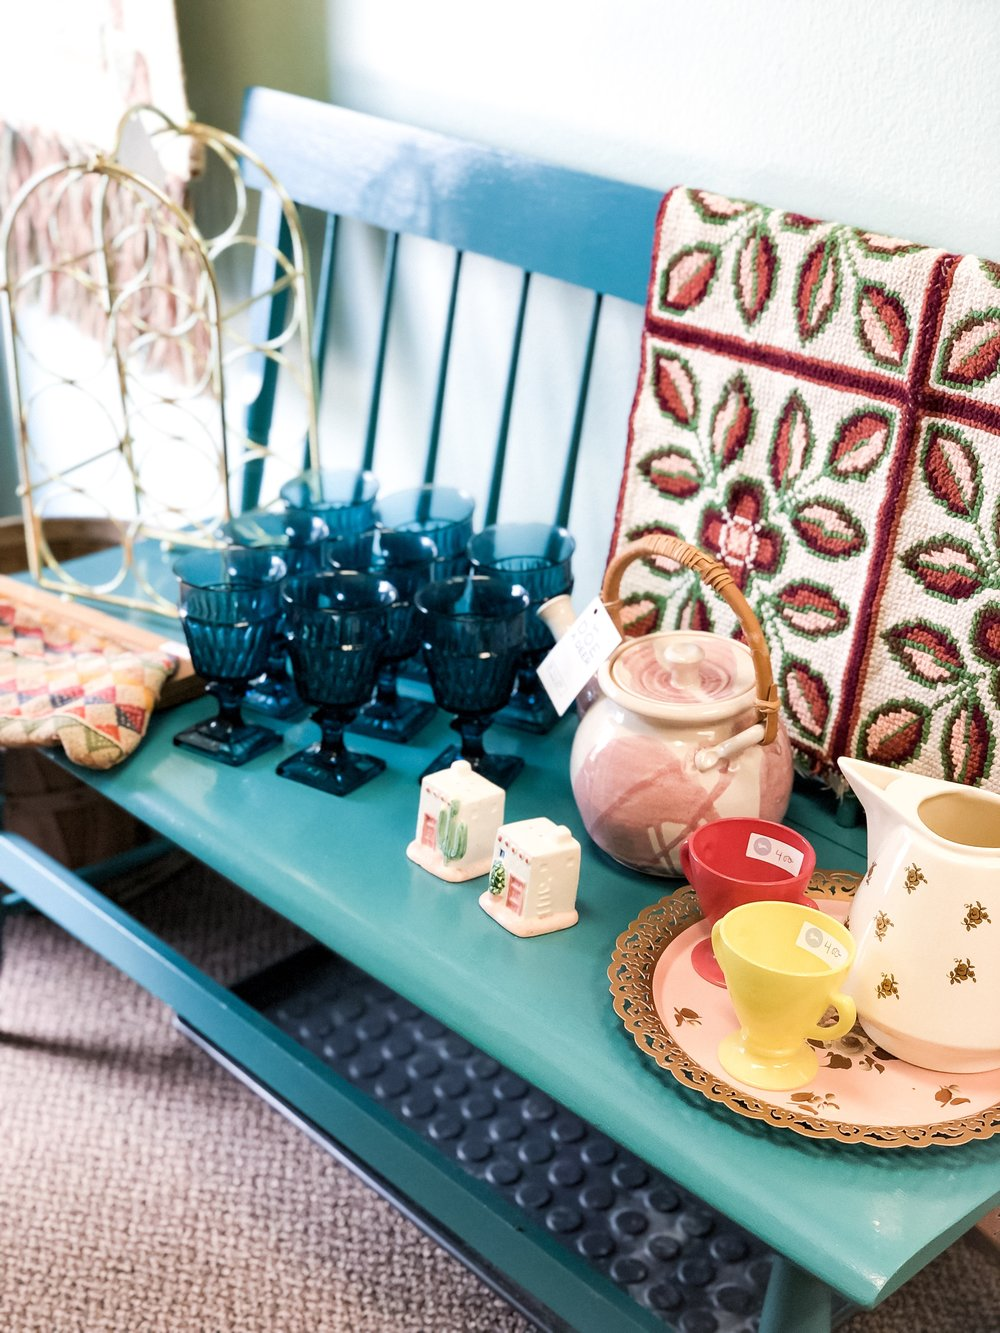 5 Tips for Hosting a Successful Vendor Event from hprallandco.com | H.Prall and Co. Interior Decorating